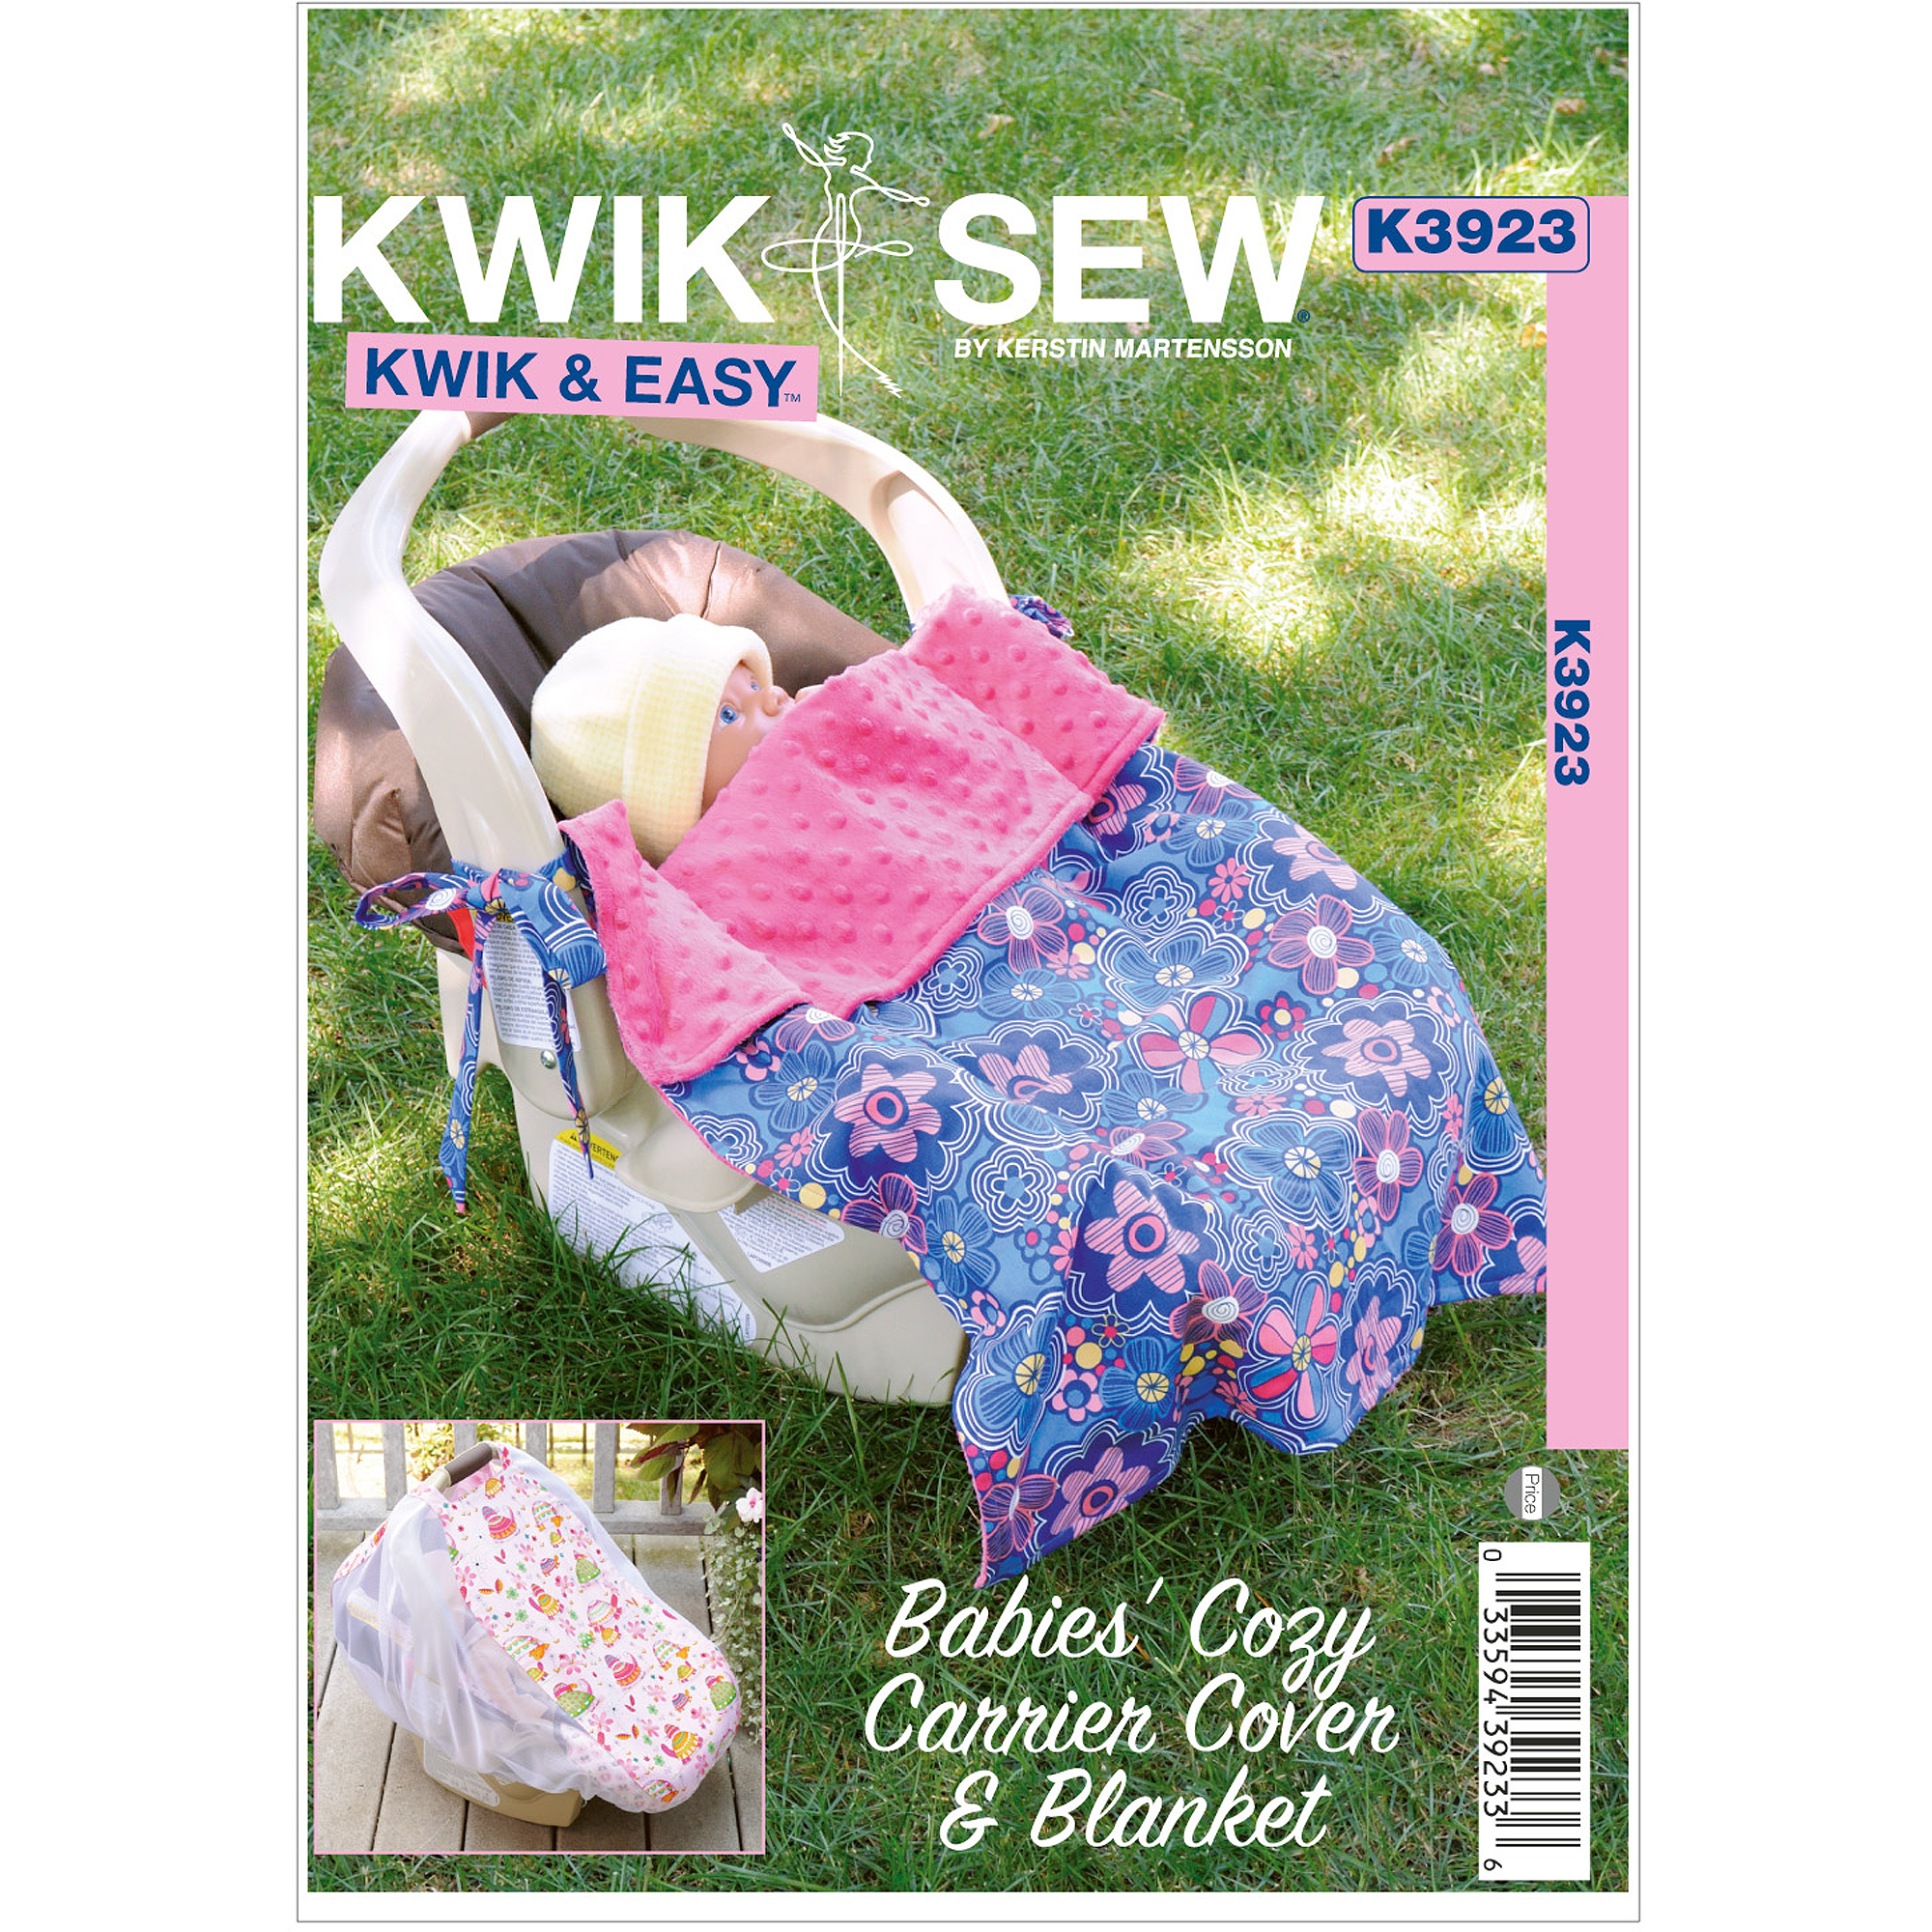 Kwik Sew Pattern Babies' Cozy Carrier Cover and Blanket